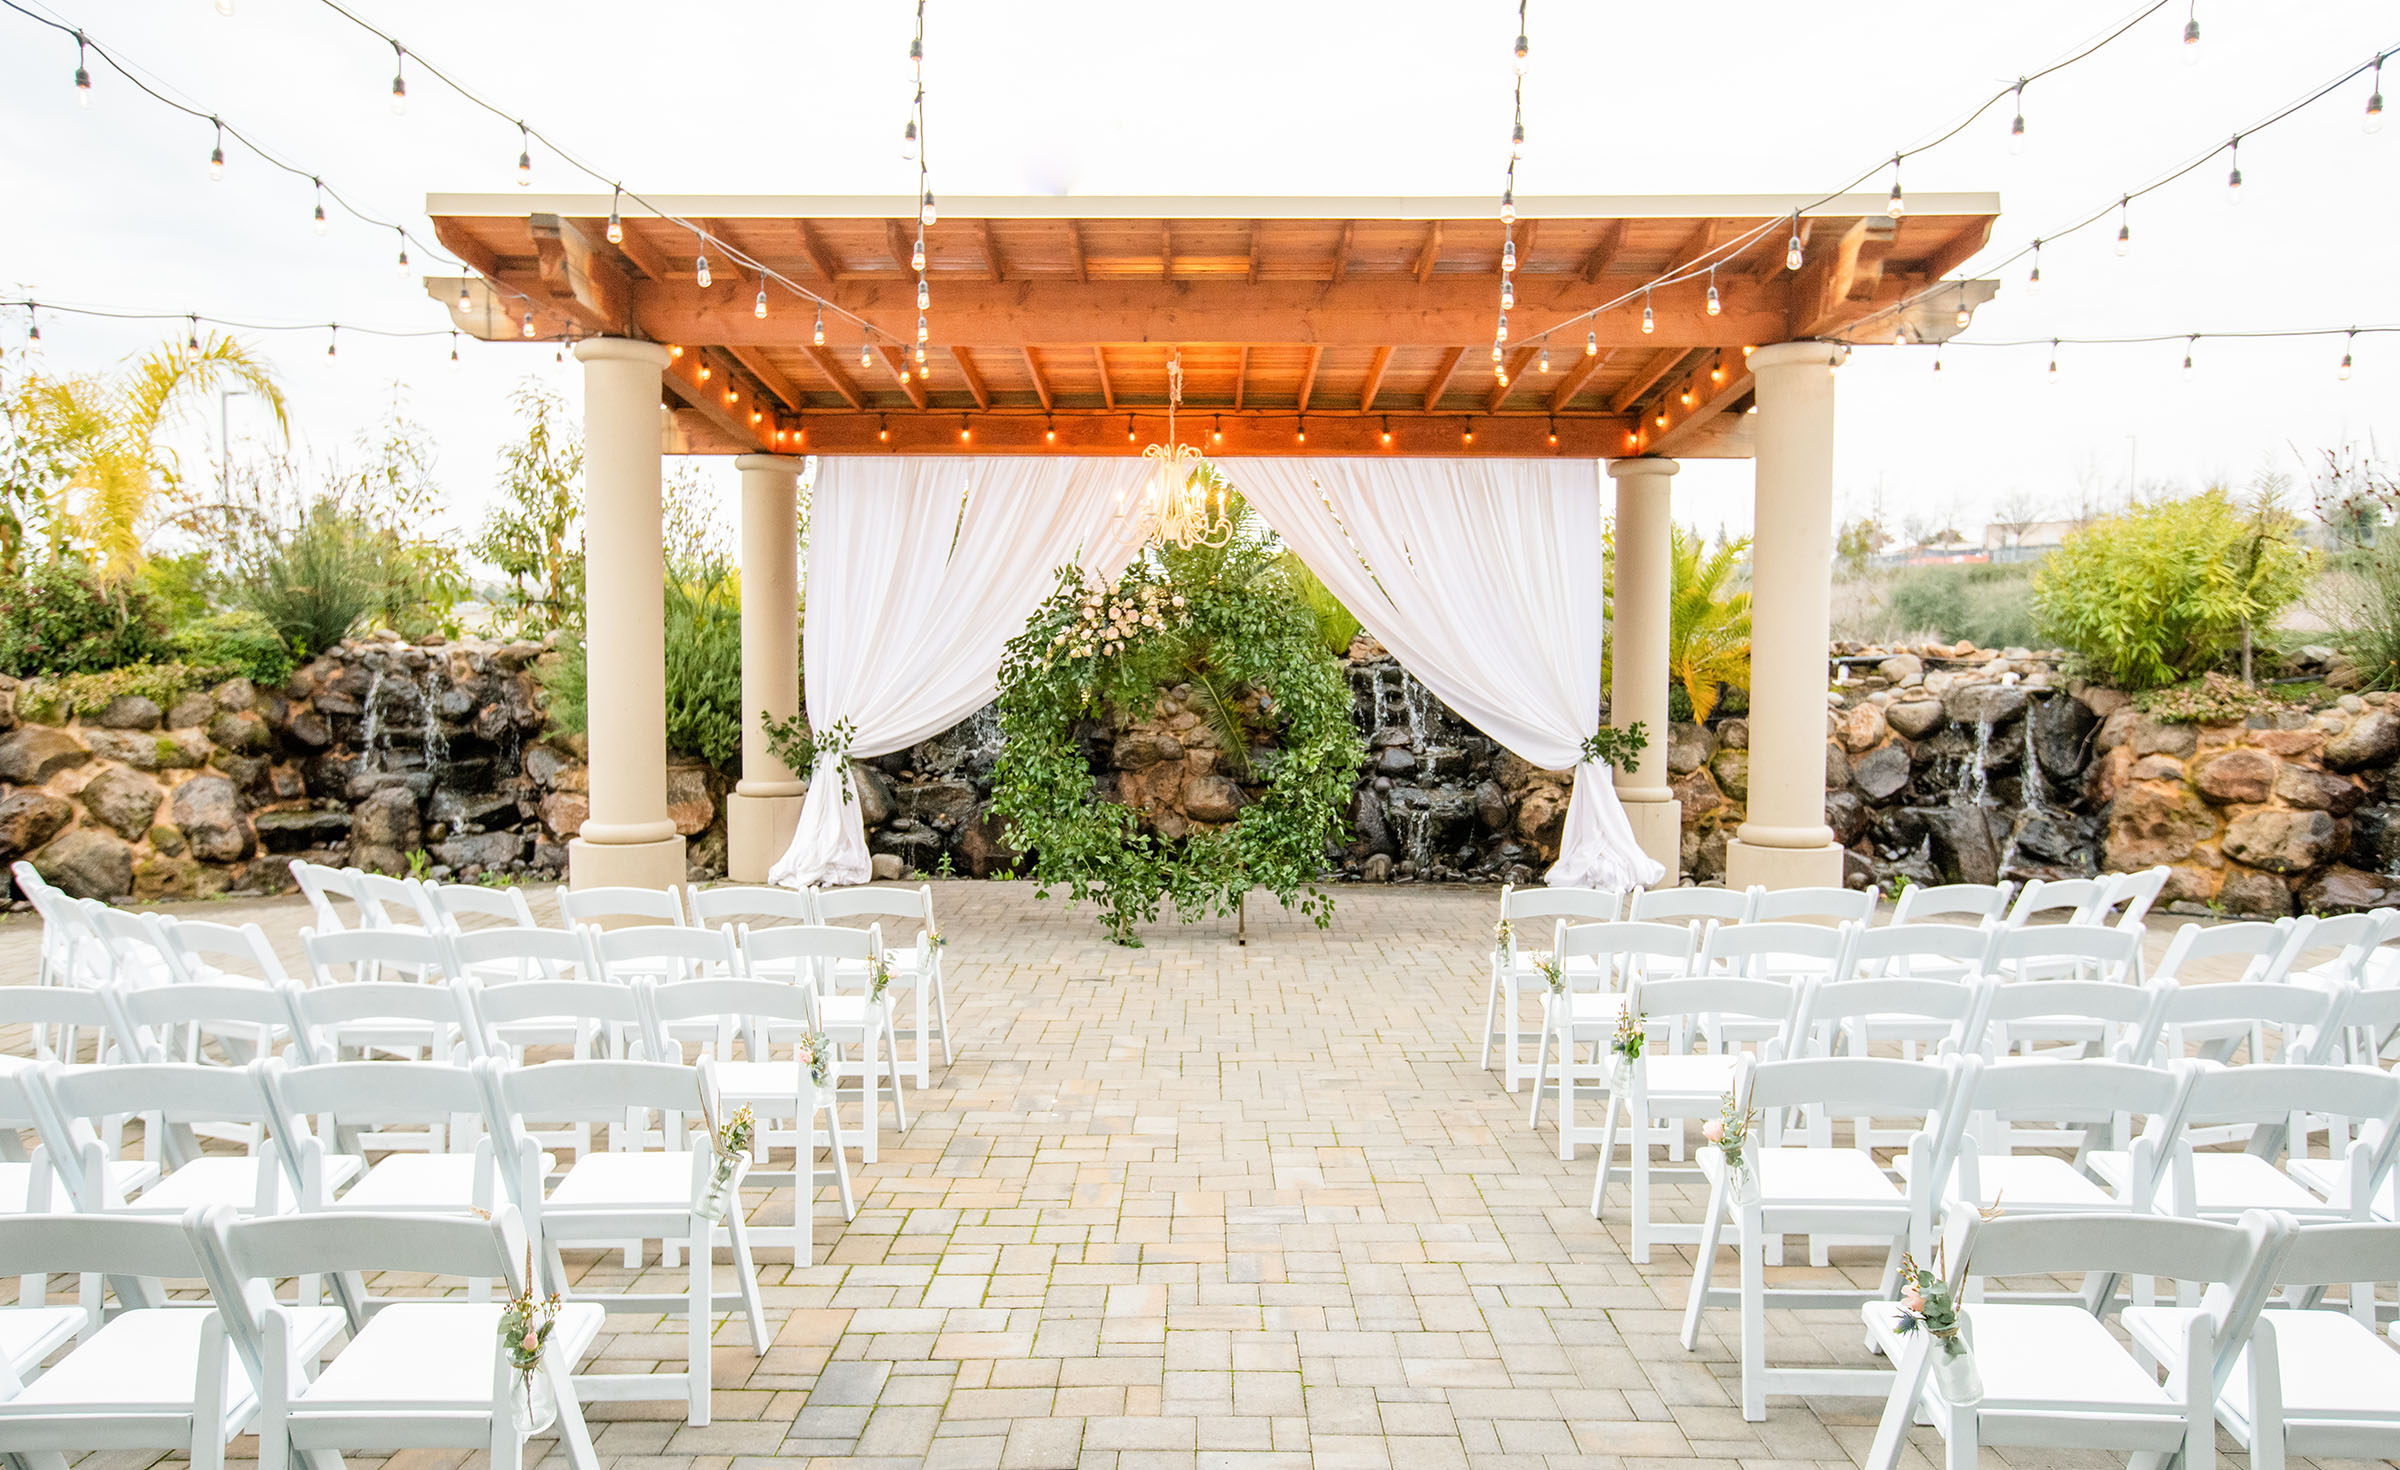 Courtyard ceremony - Union Brick - Roseville, California, Placer County - Wedgewood Weddings